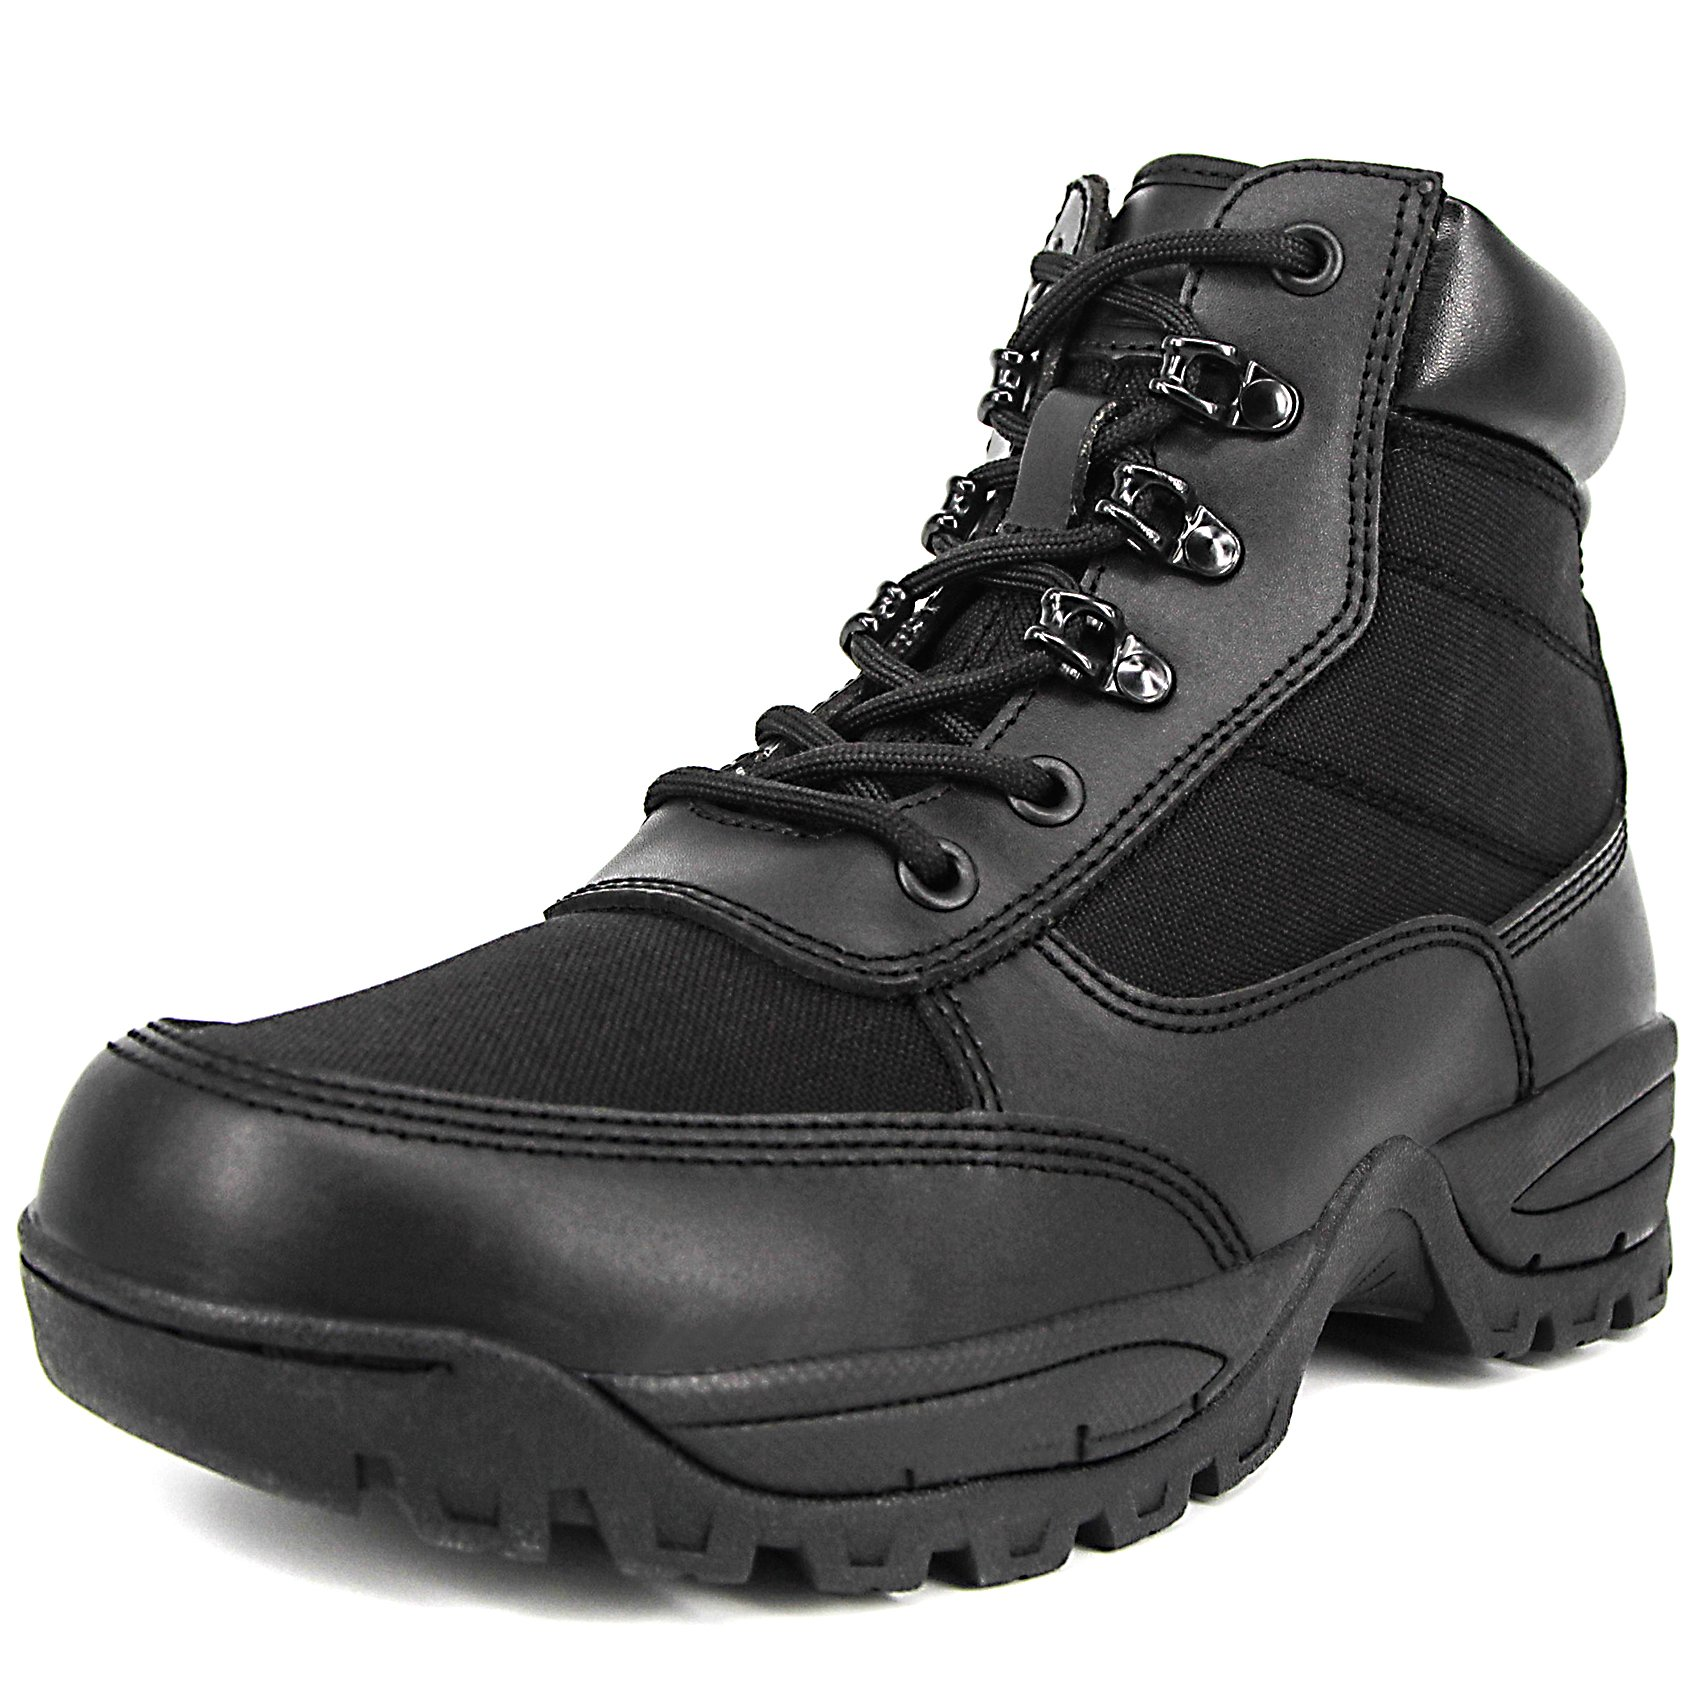 Milforce Men's 6 inch Military Tactical Ankle Boots Lightweight Police Duty Work Shoes with Side Zipper, Black (8 D (M) US)